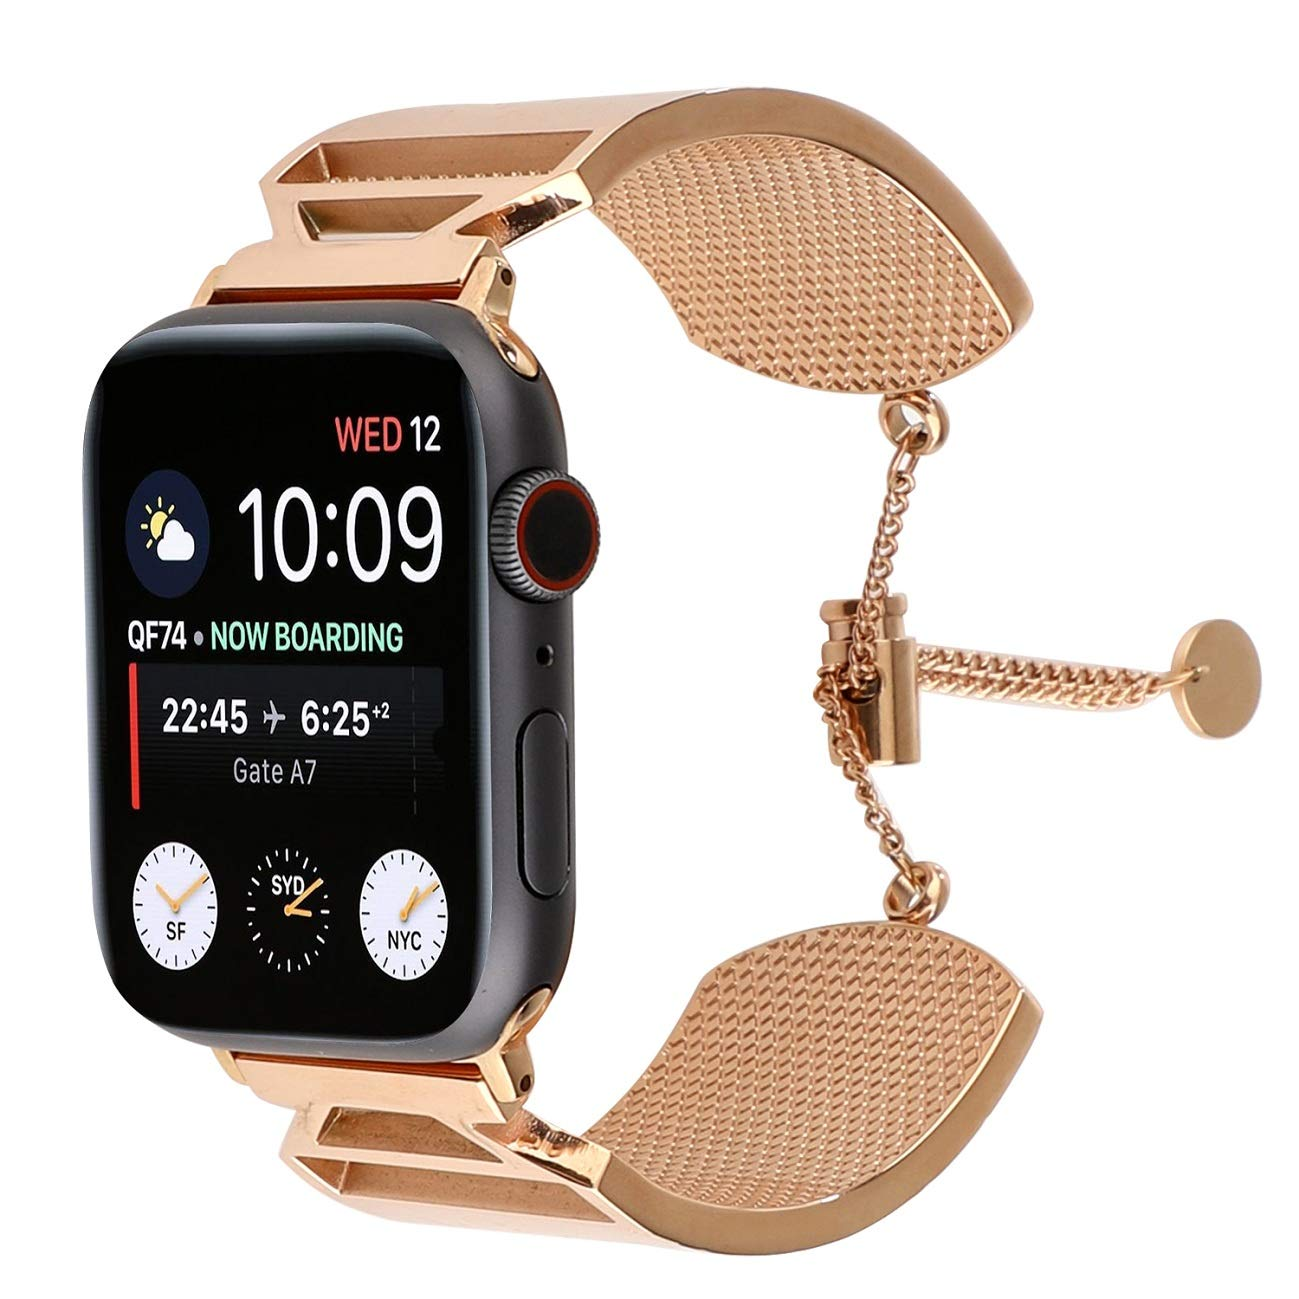 Juzzhou Replacement for Watch Band Apple Watch iWatch Series 1 2 3 4 Edition Stainless Steel Wriststrap Wristband Bracelet Wrist Strap with Metal Adapter Clasp Woman Girl Lady Boy Rose Gold 38mm 40mm by Juzzhou